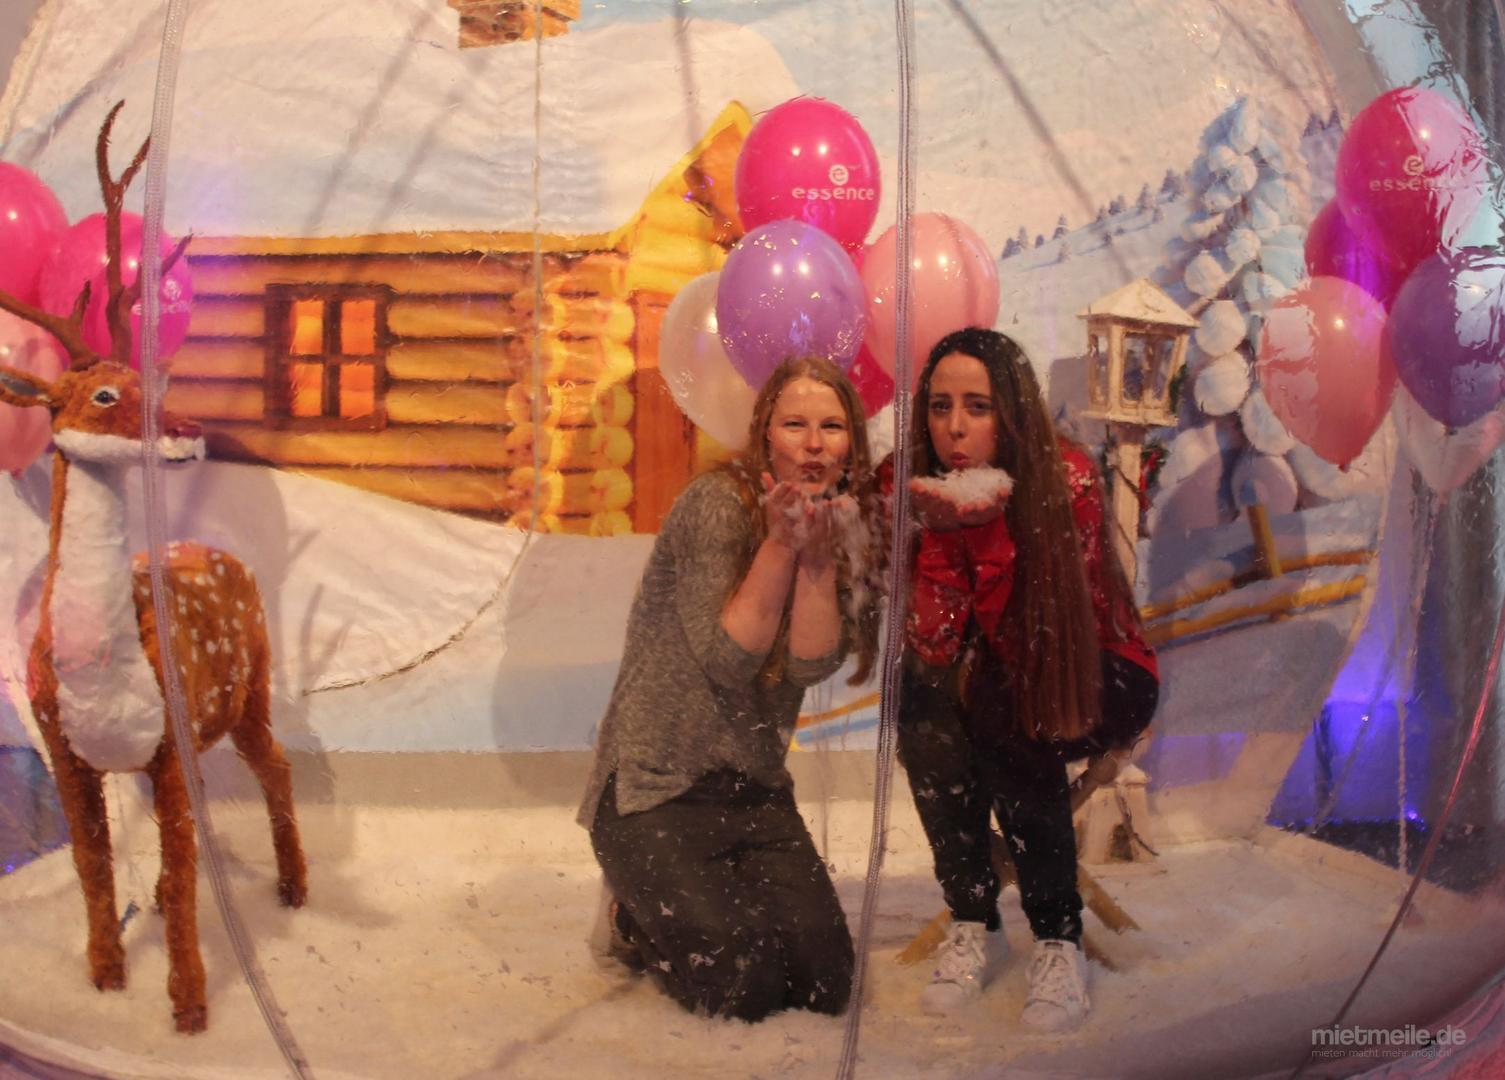 Fotobox mieten & vermieten - Begehbare Schneekugel mieten / Fotoservice / Photo Booth / Foto Station / Photo Point in Aachen